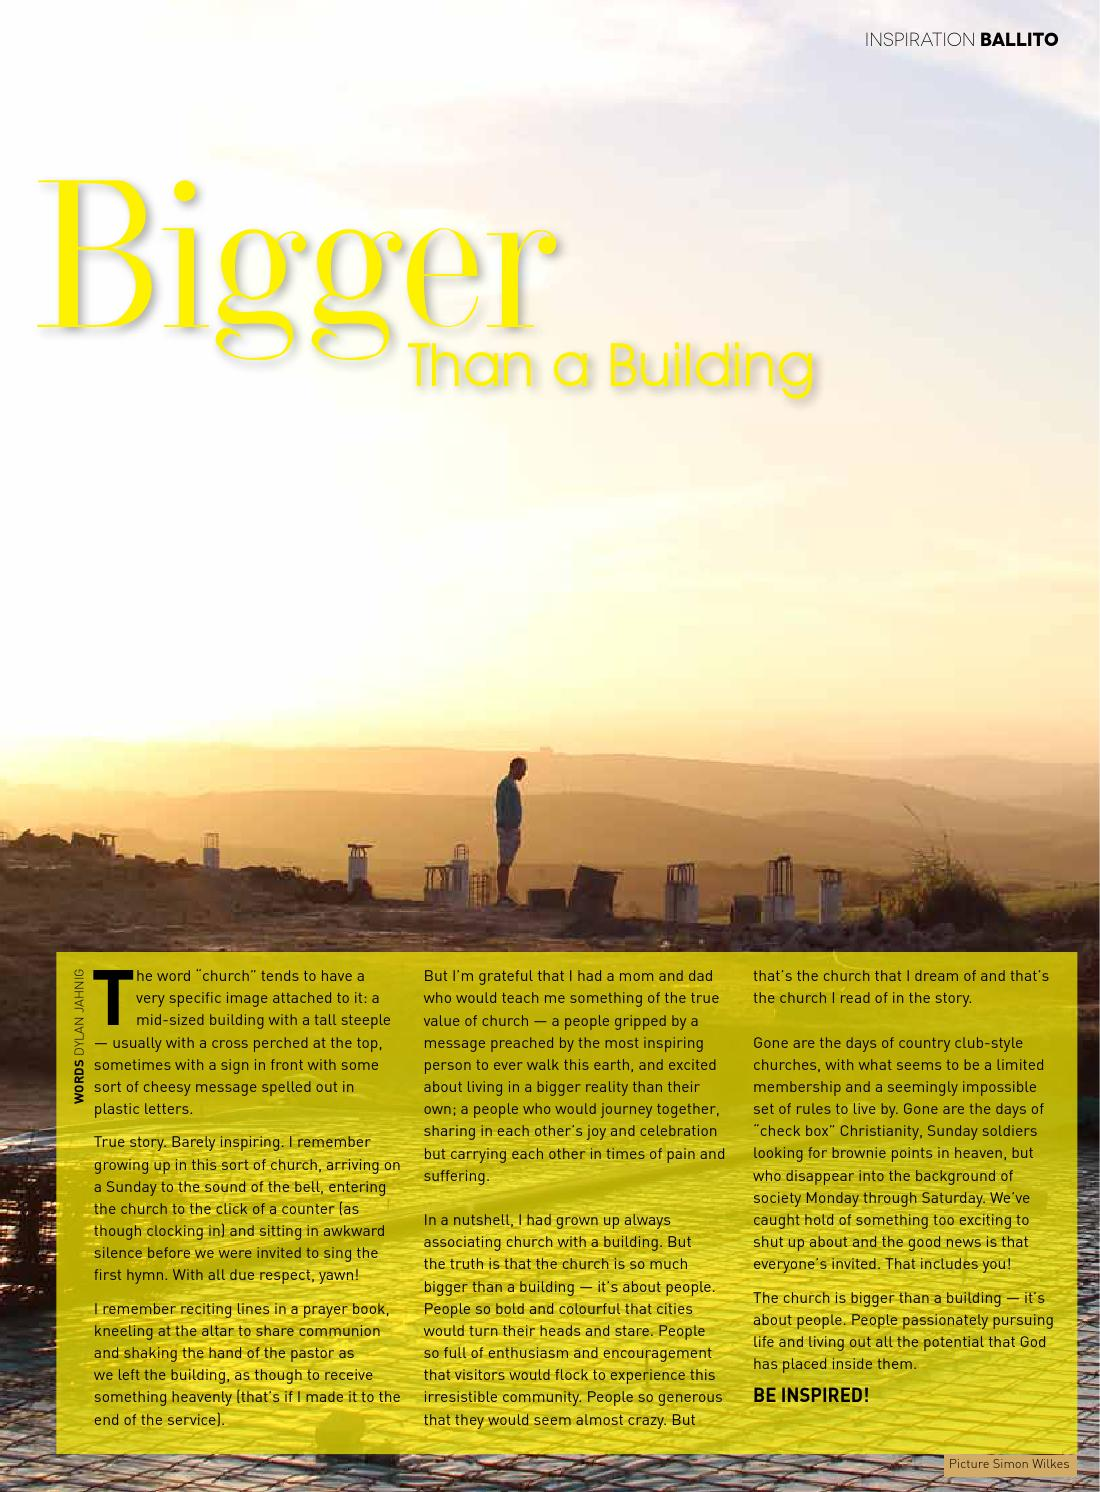 Ballito December Edition 26 by FabMags Publications - issuu